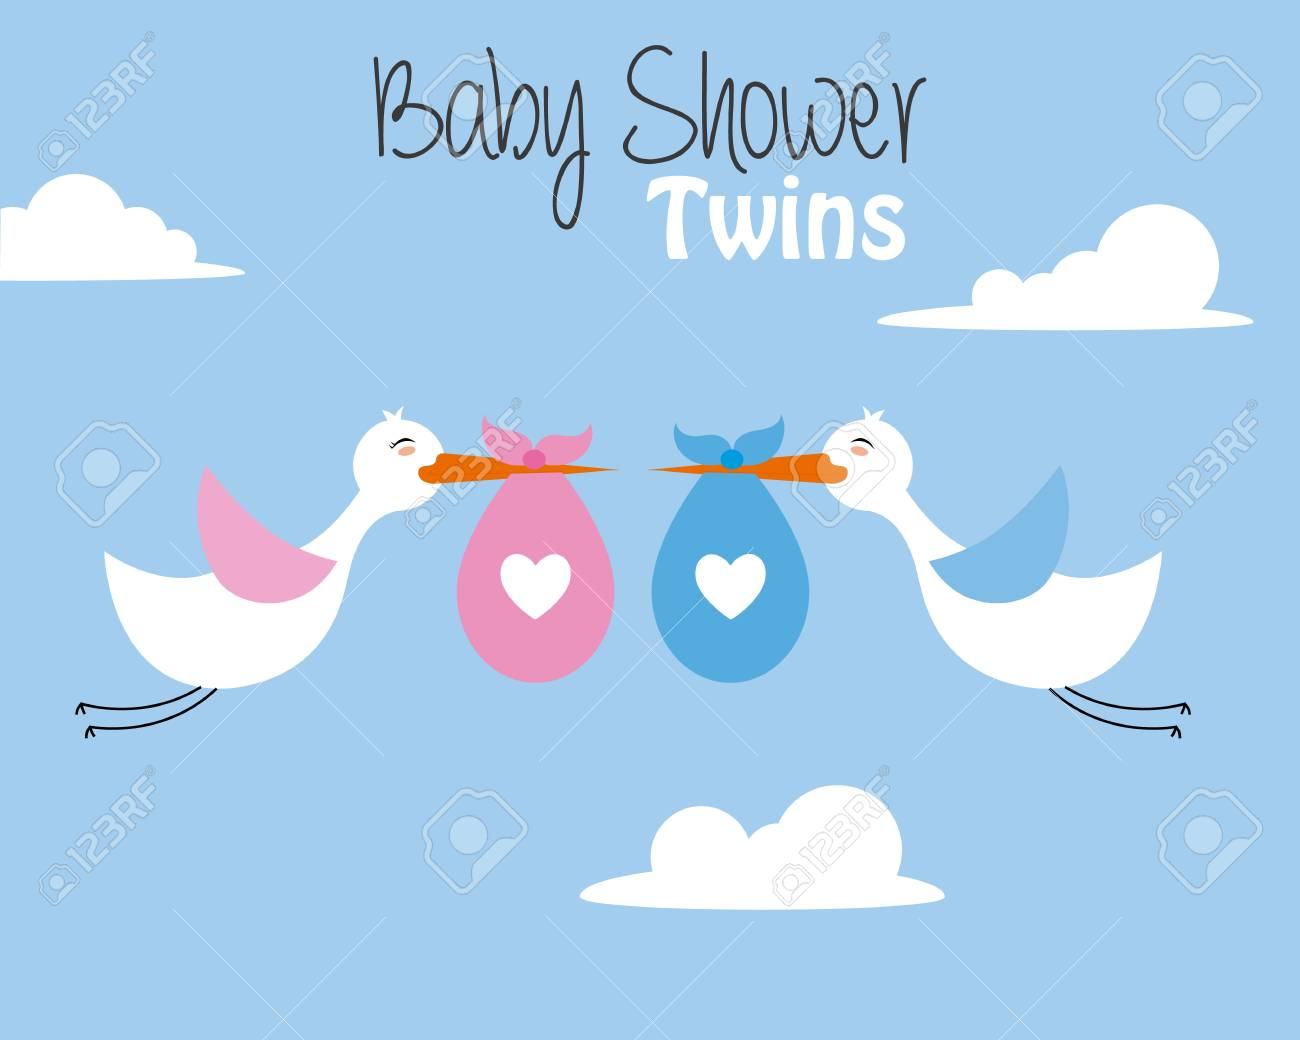 Twin Baby Shower Card Storks With Baby Girl And Boy Royalty Free Cliparts Vectors And Stock Illustration Image 111999345